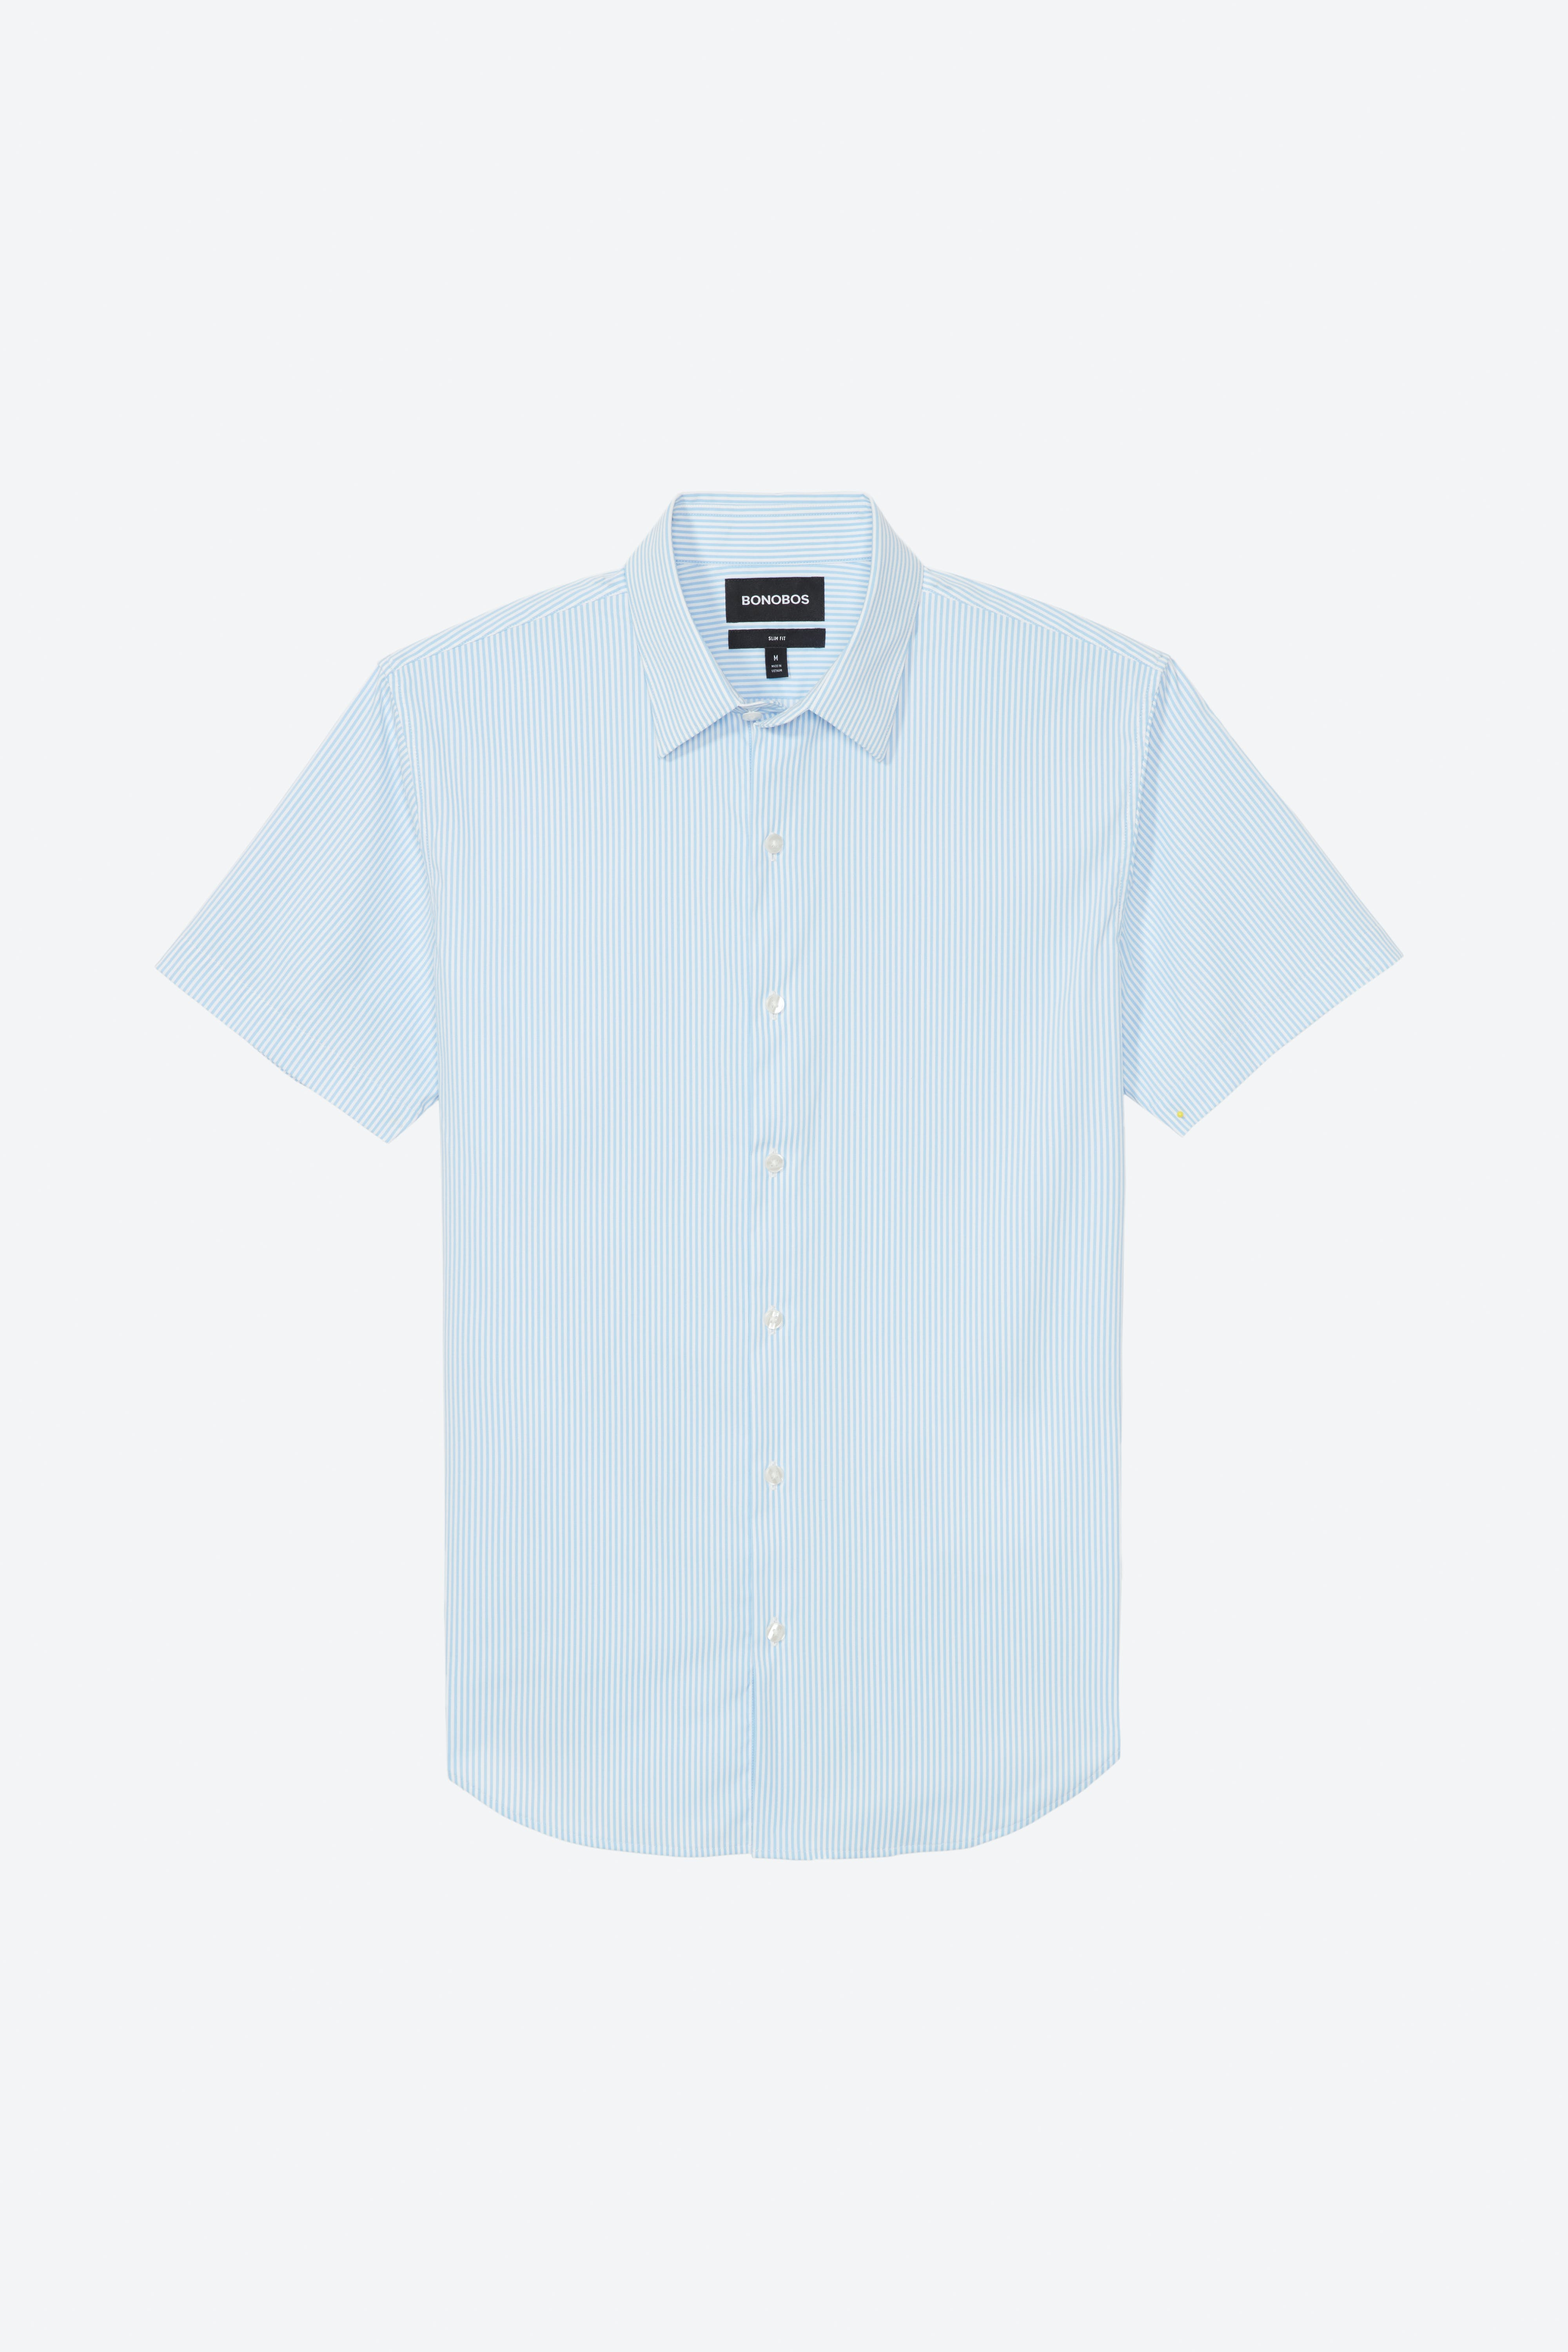 Tech Short Sleeve Shirt Extended Sizes